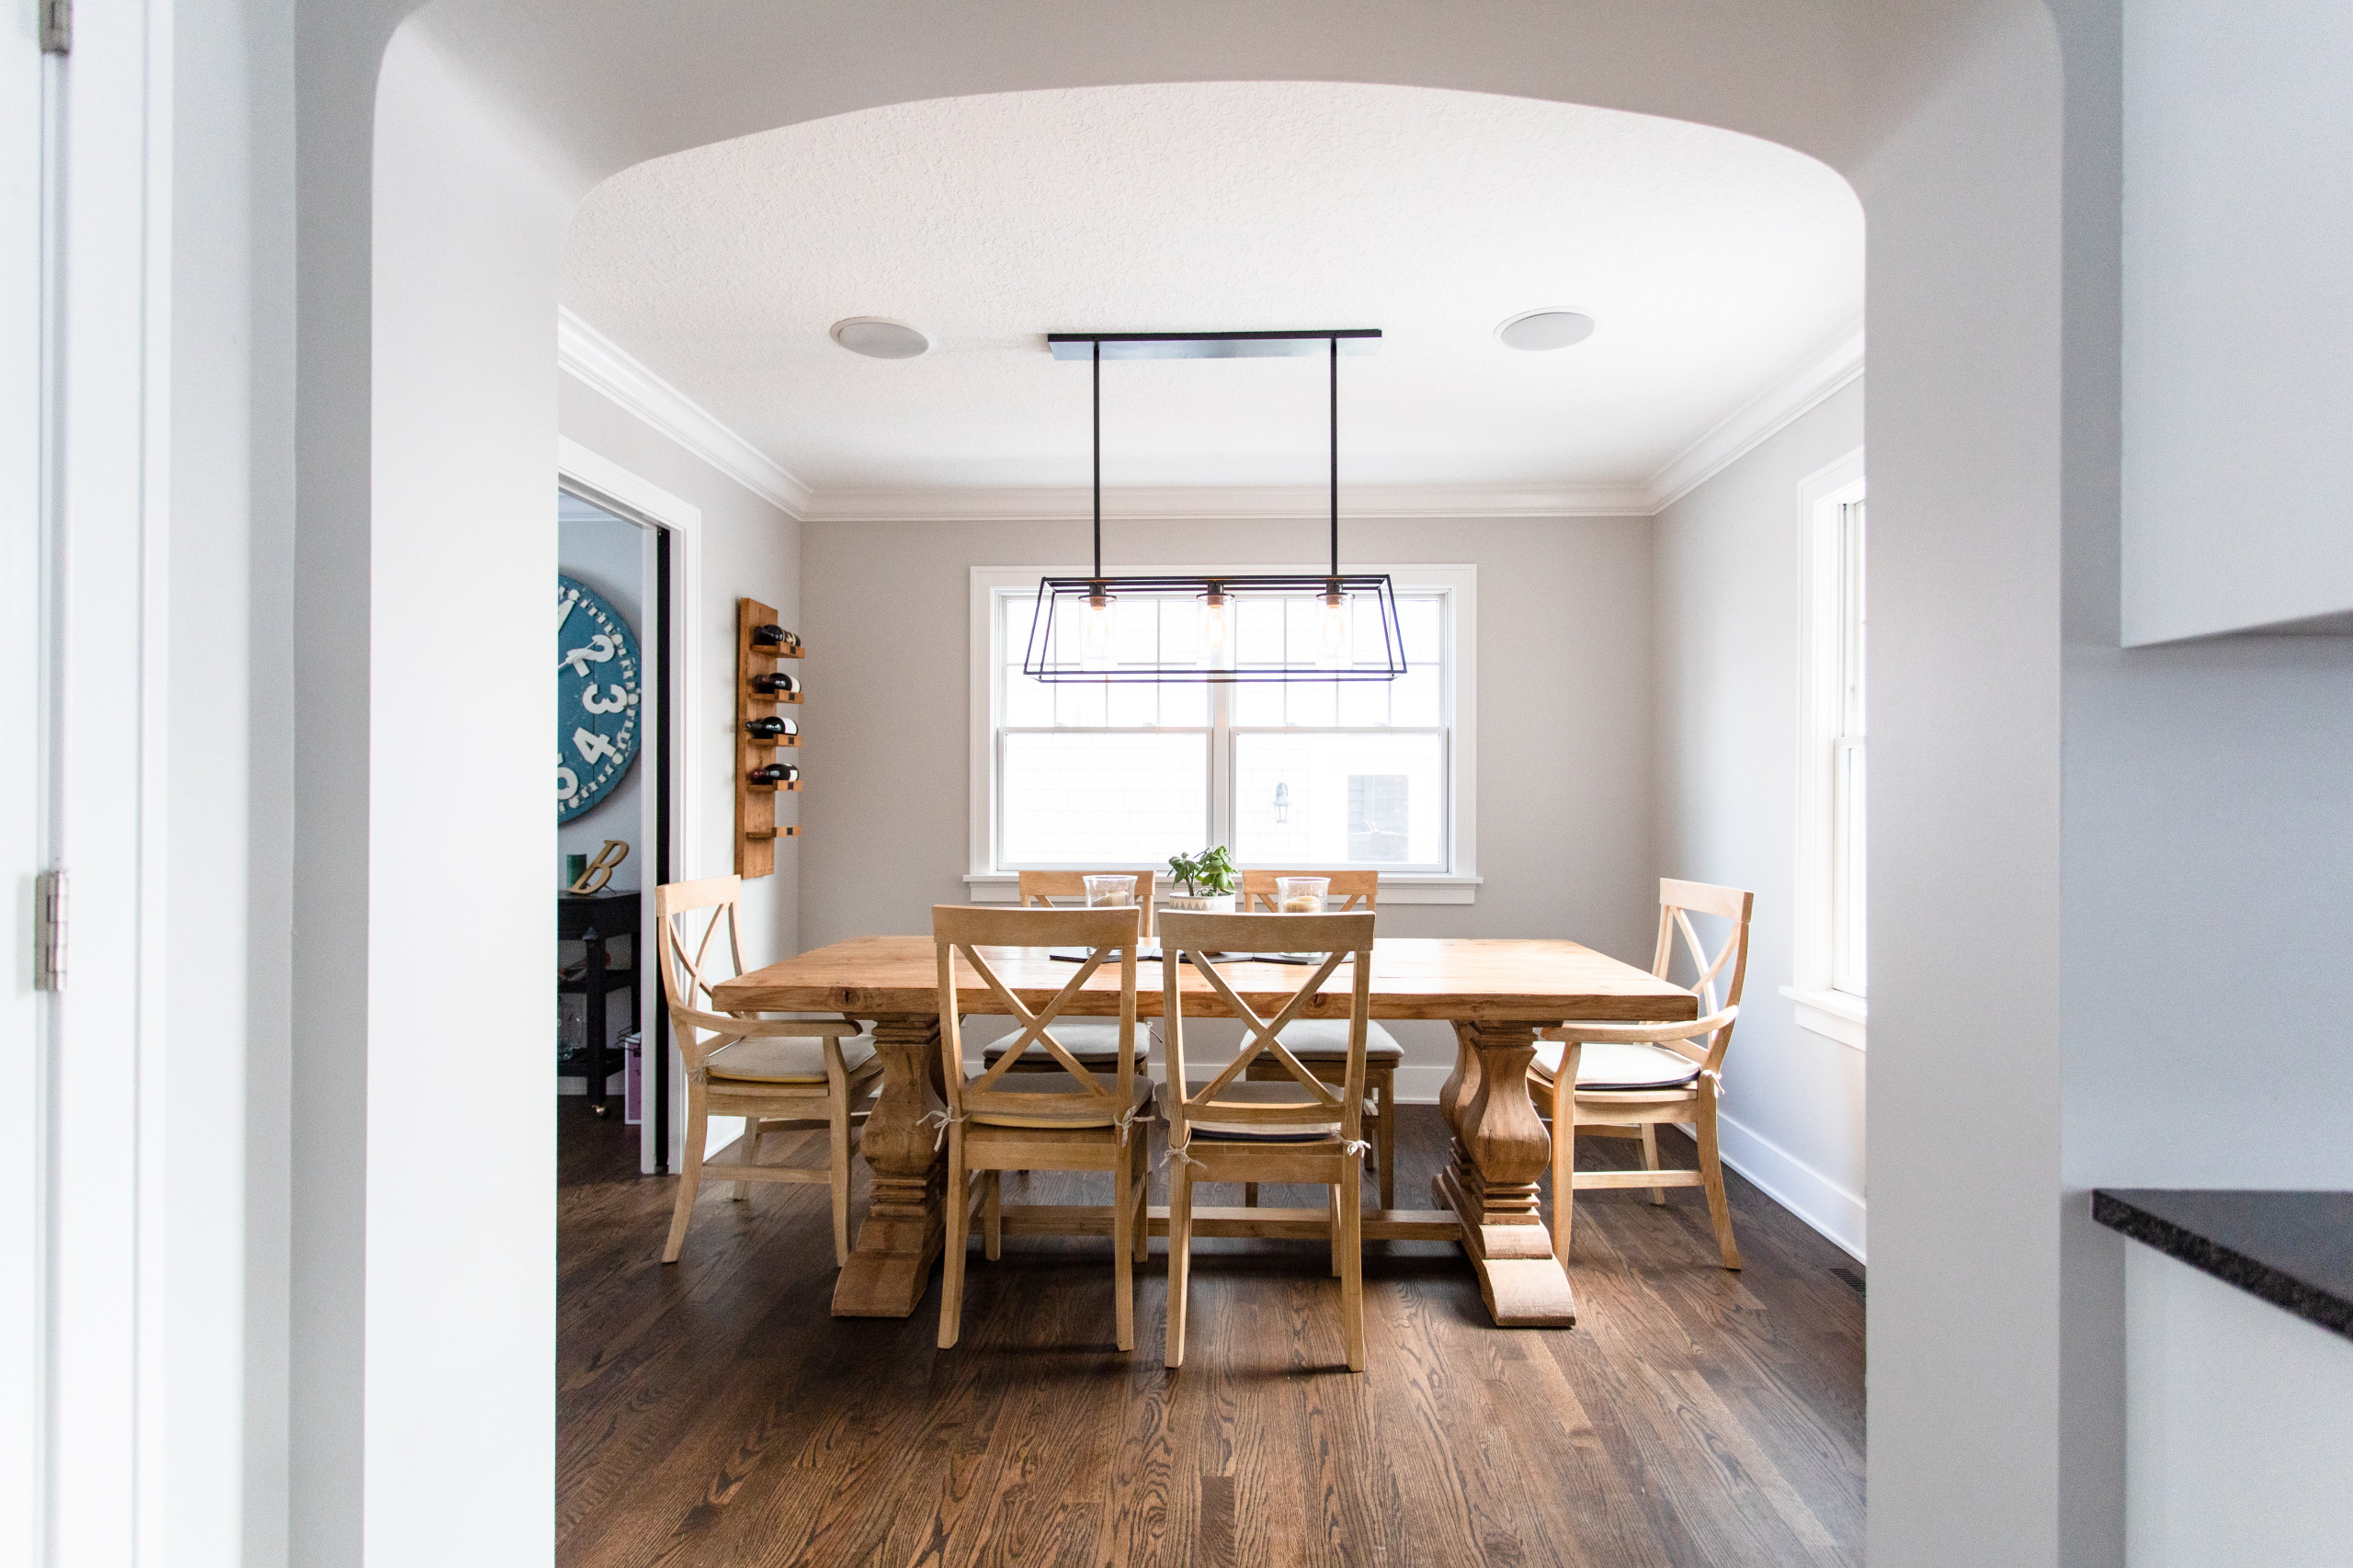 56th Street Project